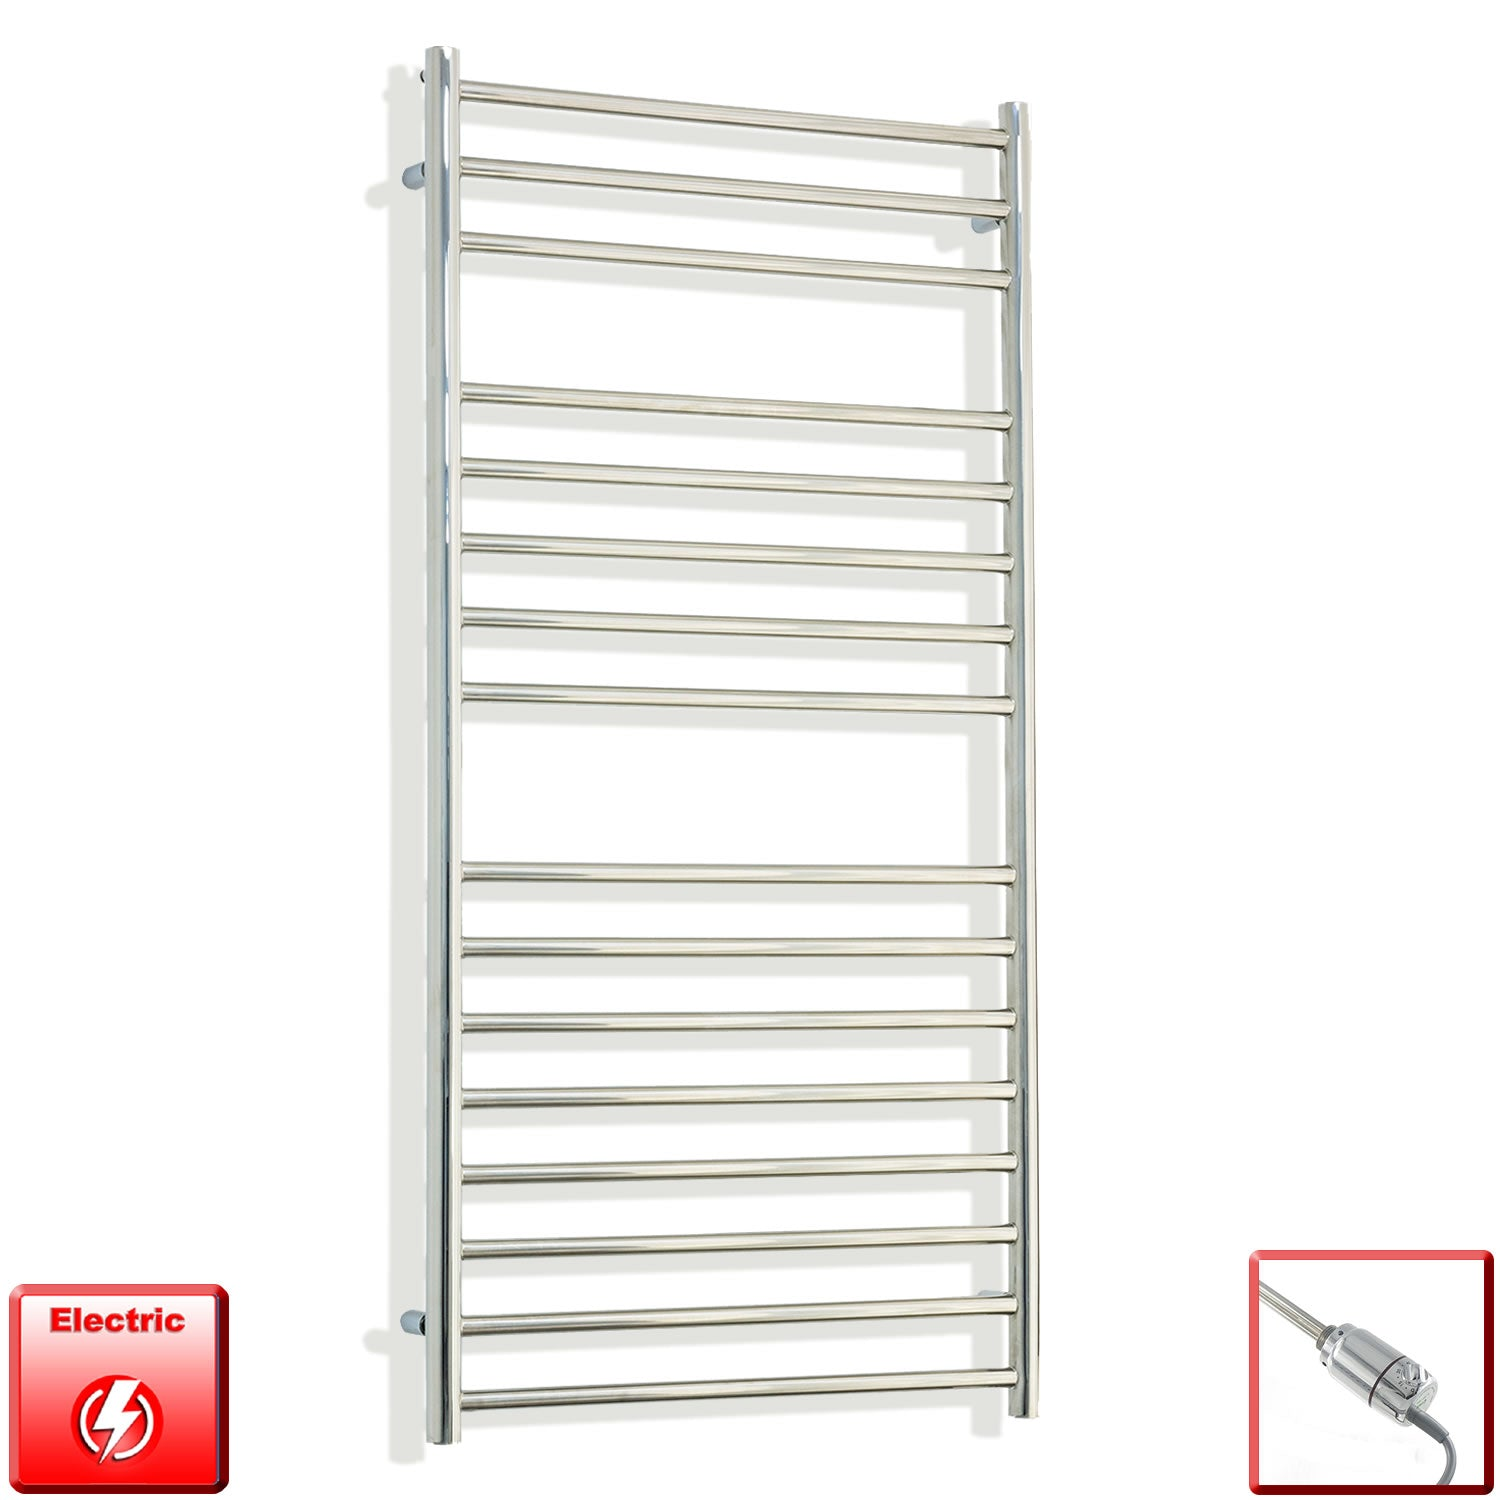 1200 mm High 600 mm Wide Pre-Filled Electric Stainless Steel Heated Towel Rail Radiator gt thermostatic heating element